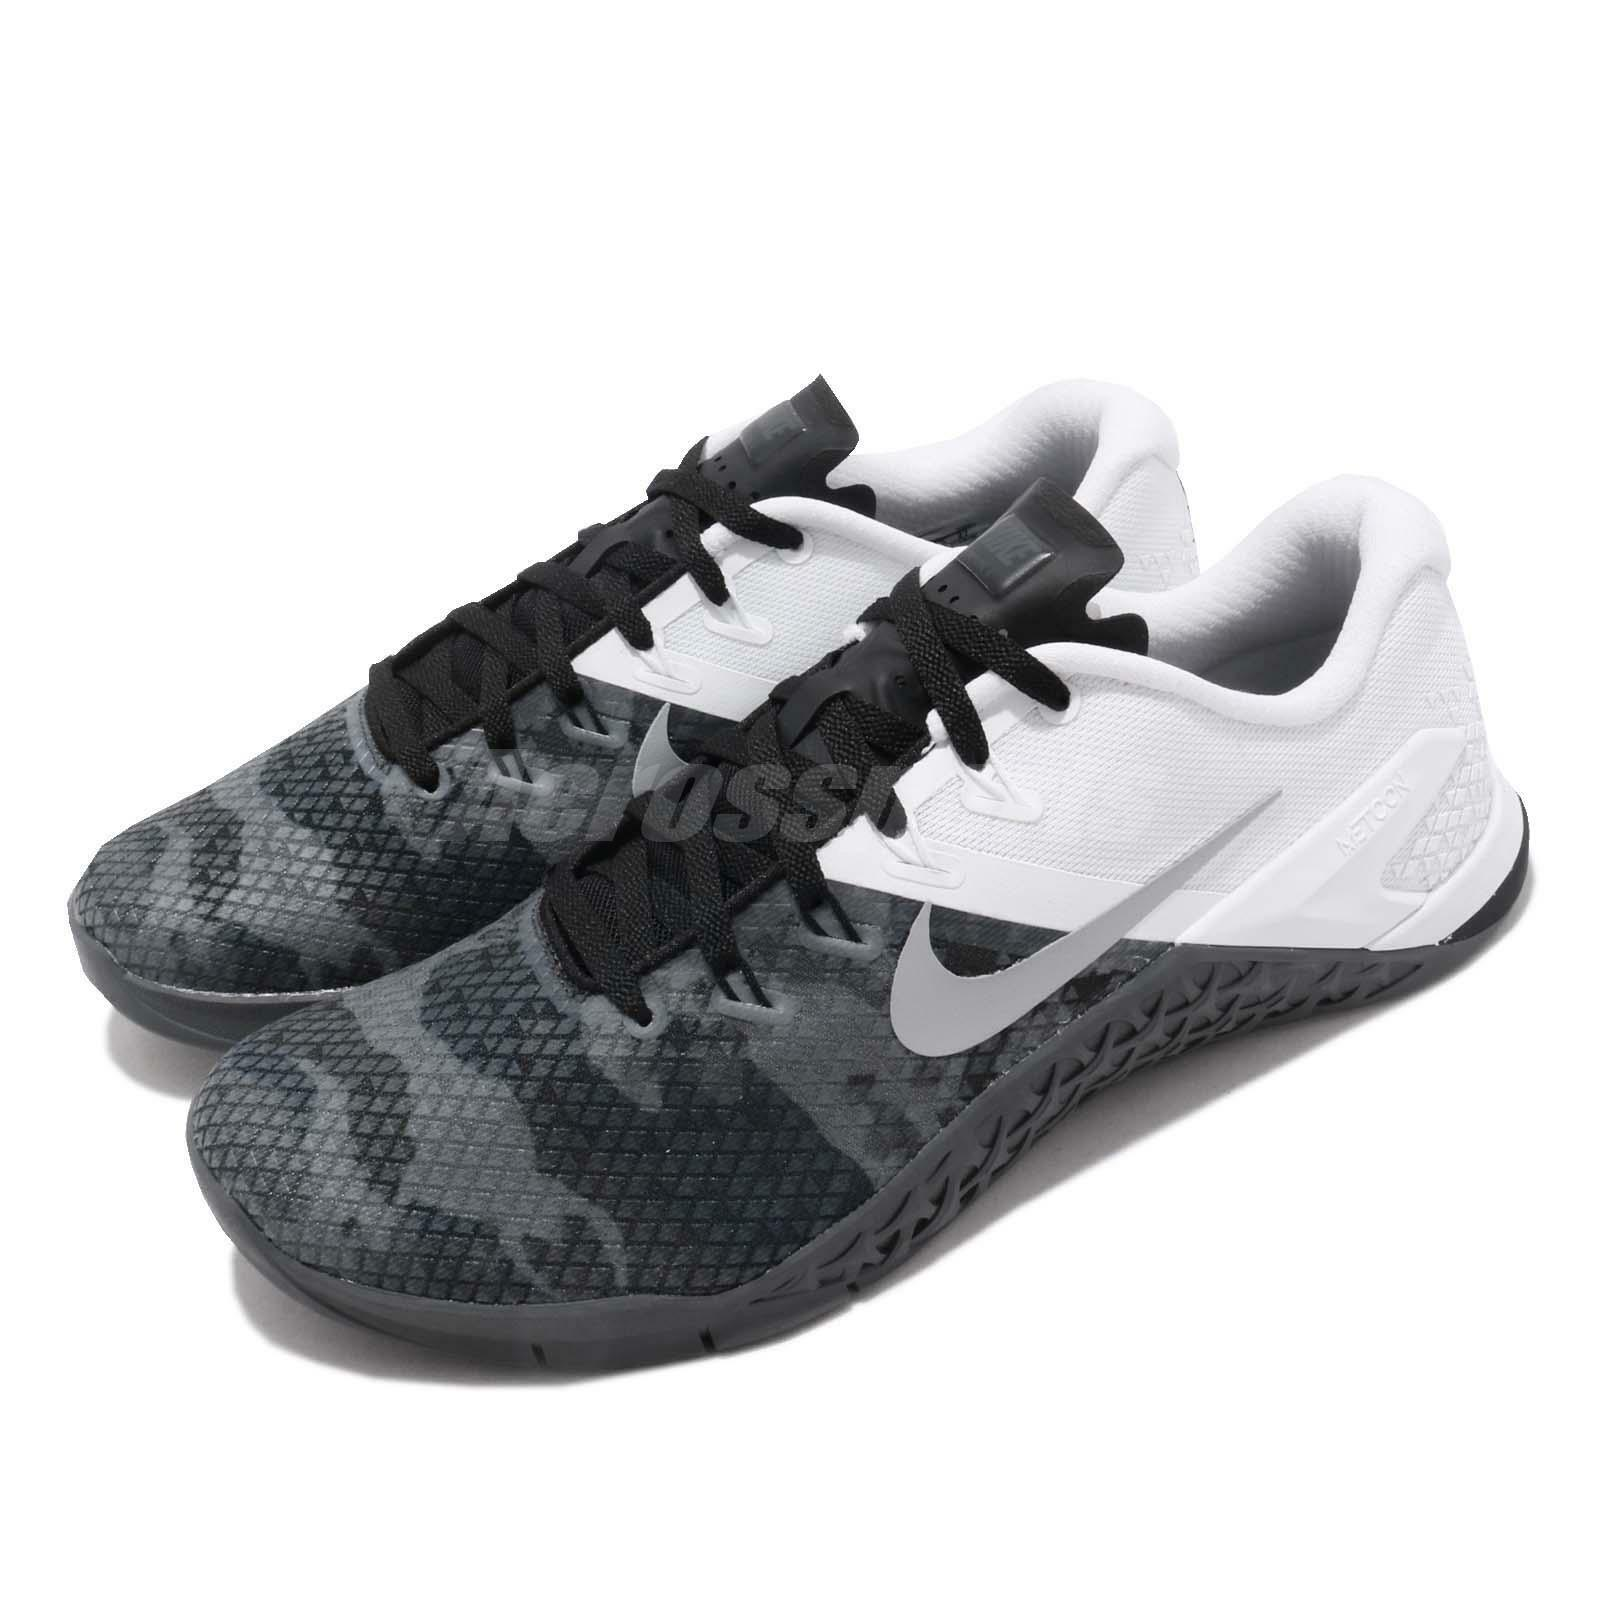 Nike Metcon 4 XD Black Grey Men Cross Training Weight Lifting shoes BV1636-012